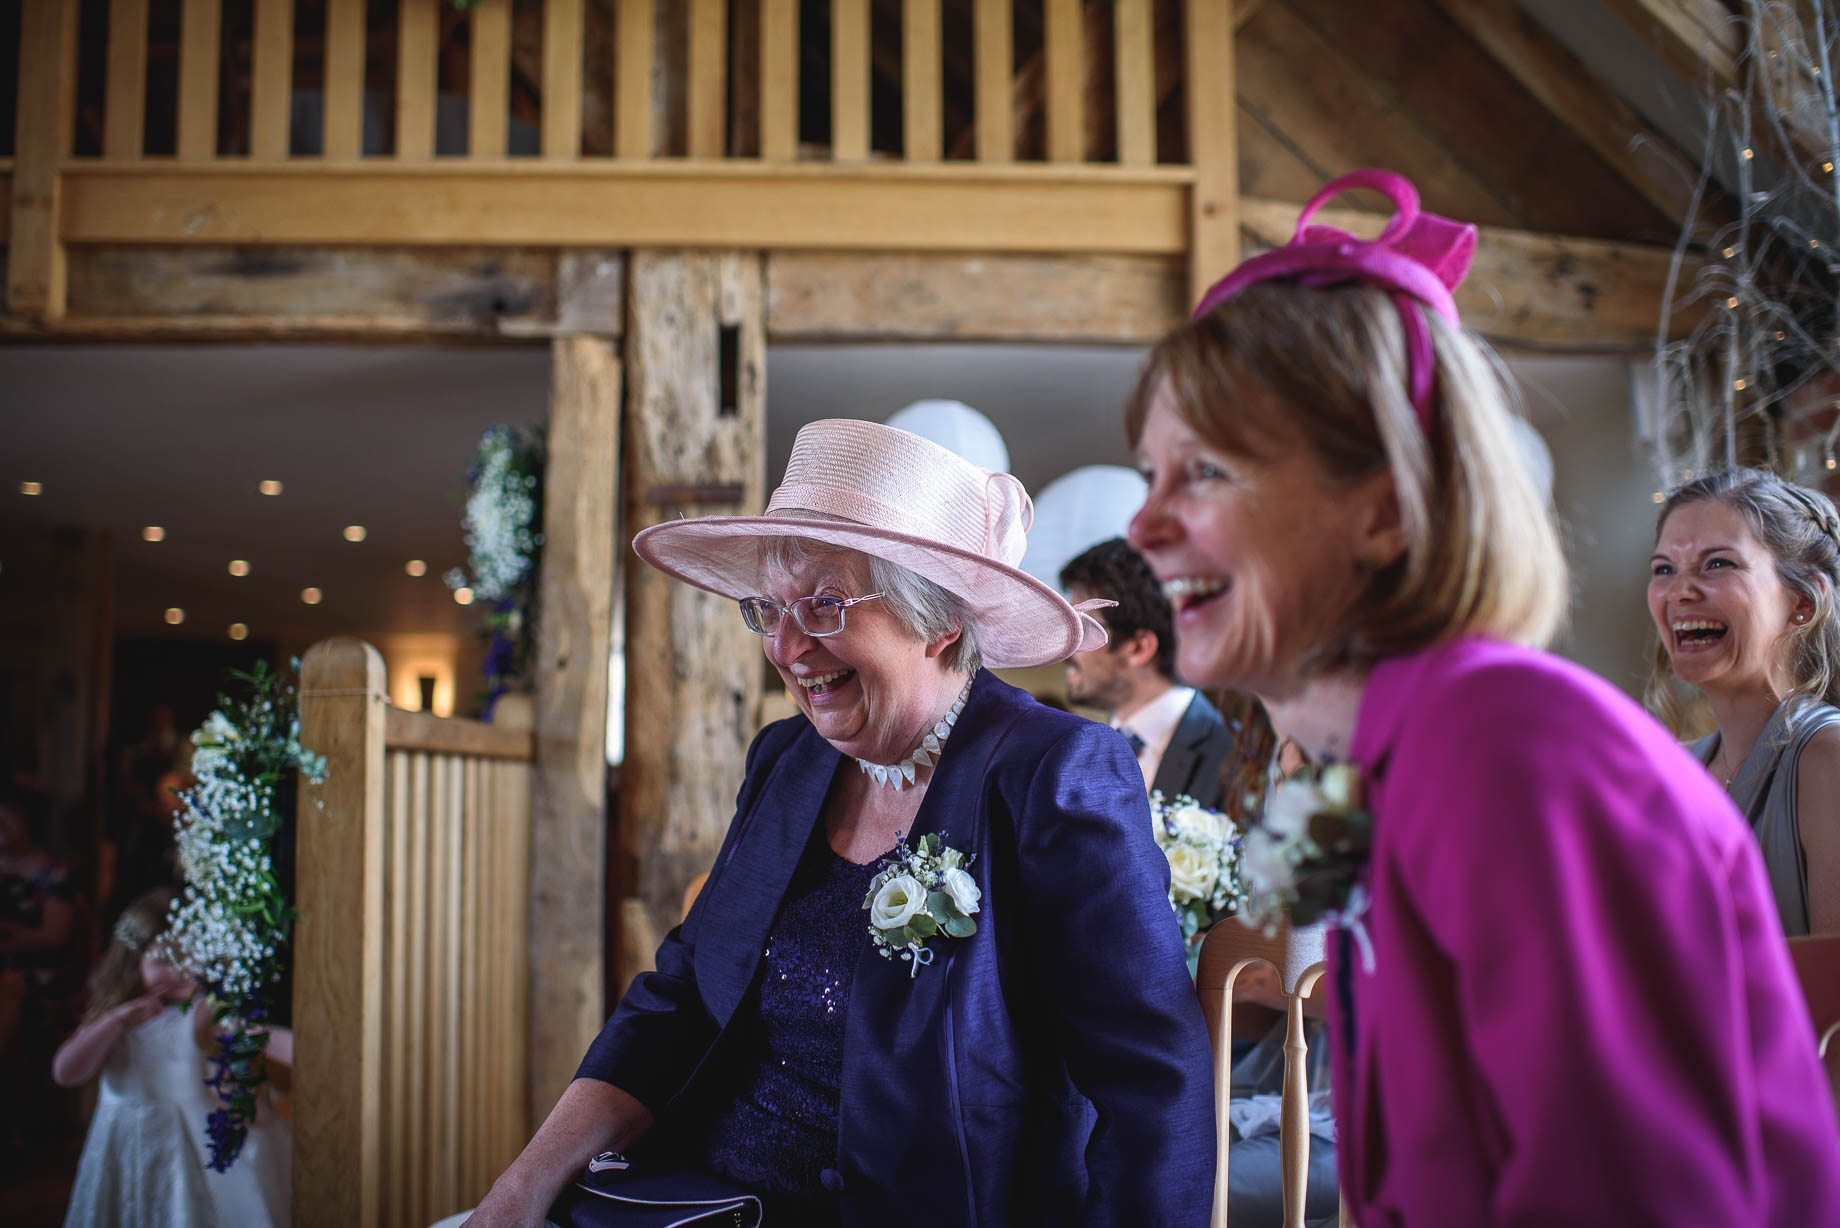 Bury Court Barn wedding photography by Guy Collier - Heather and Pat (50 of 170)